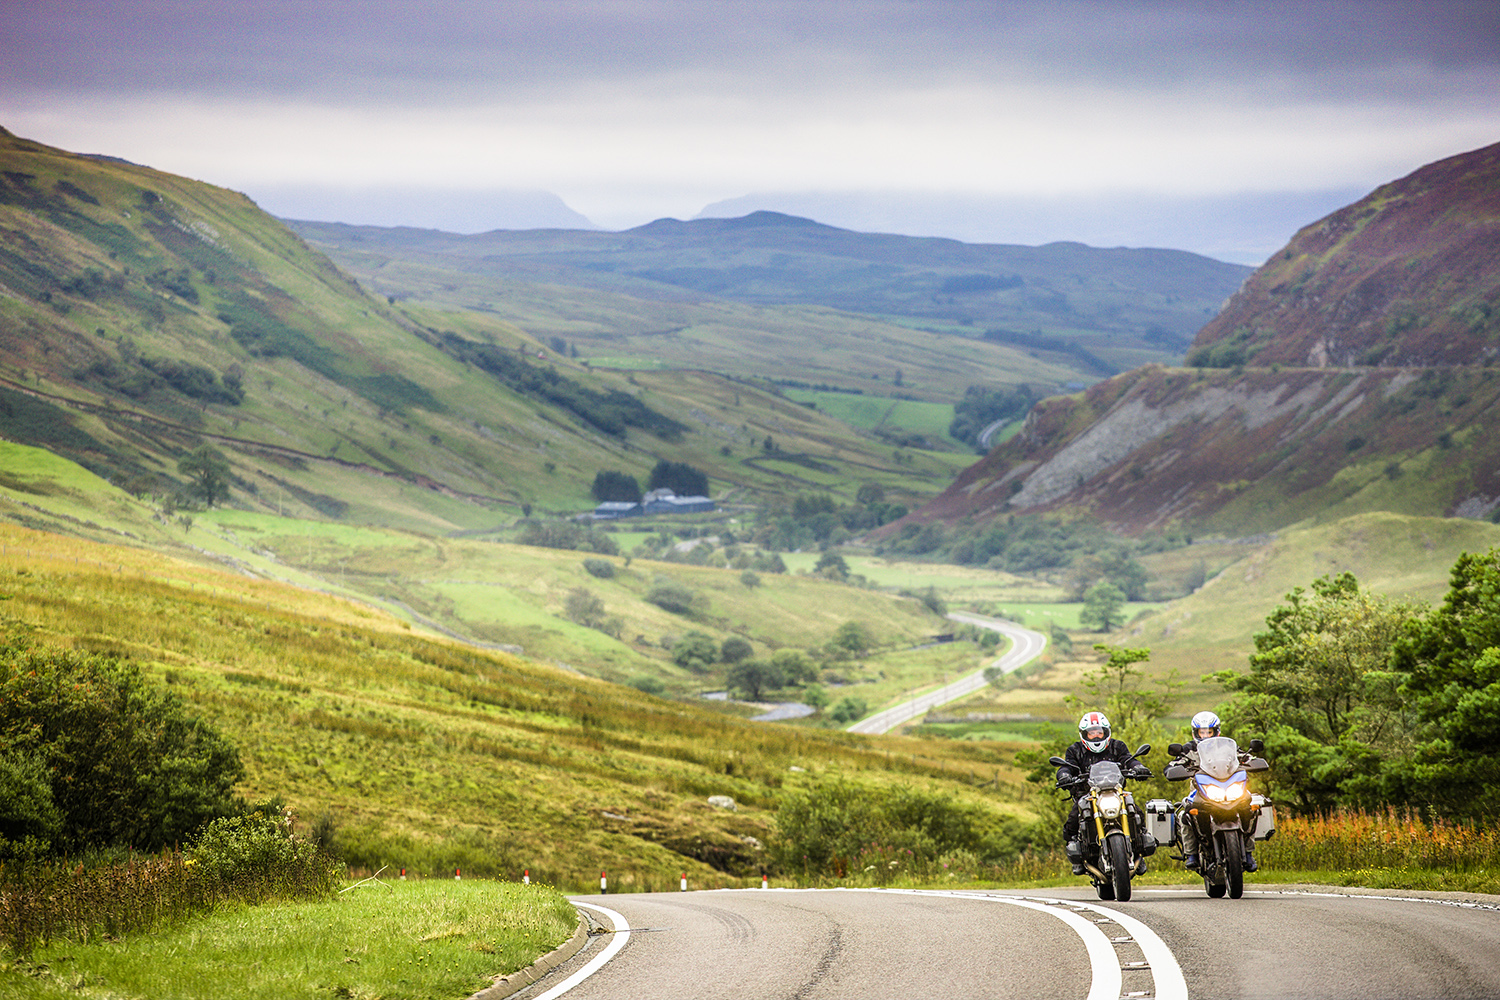 Motorcycle riding in North Wales